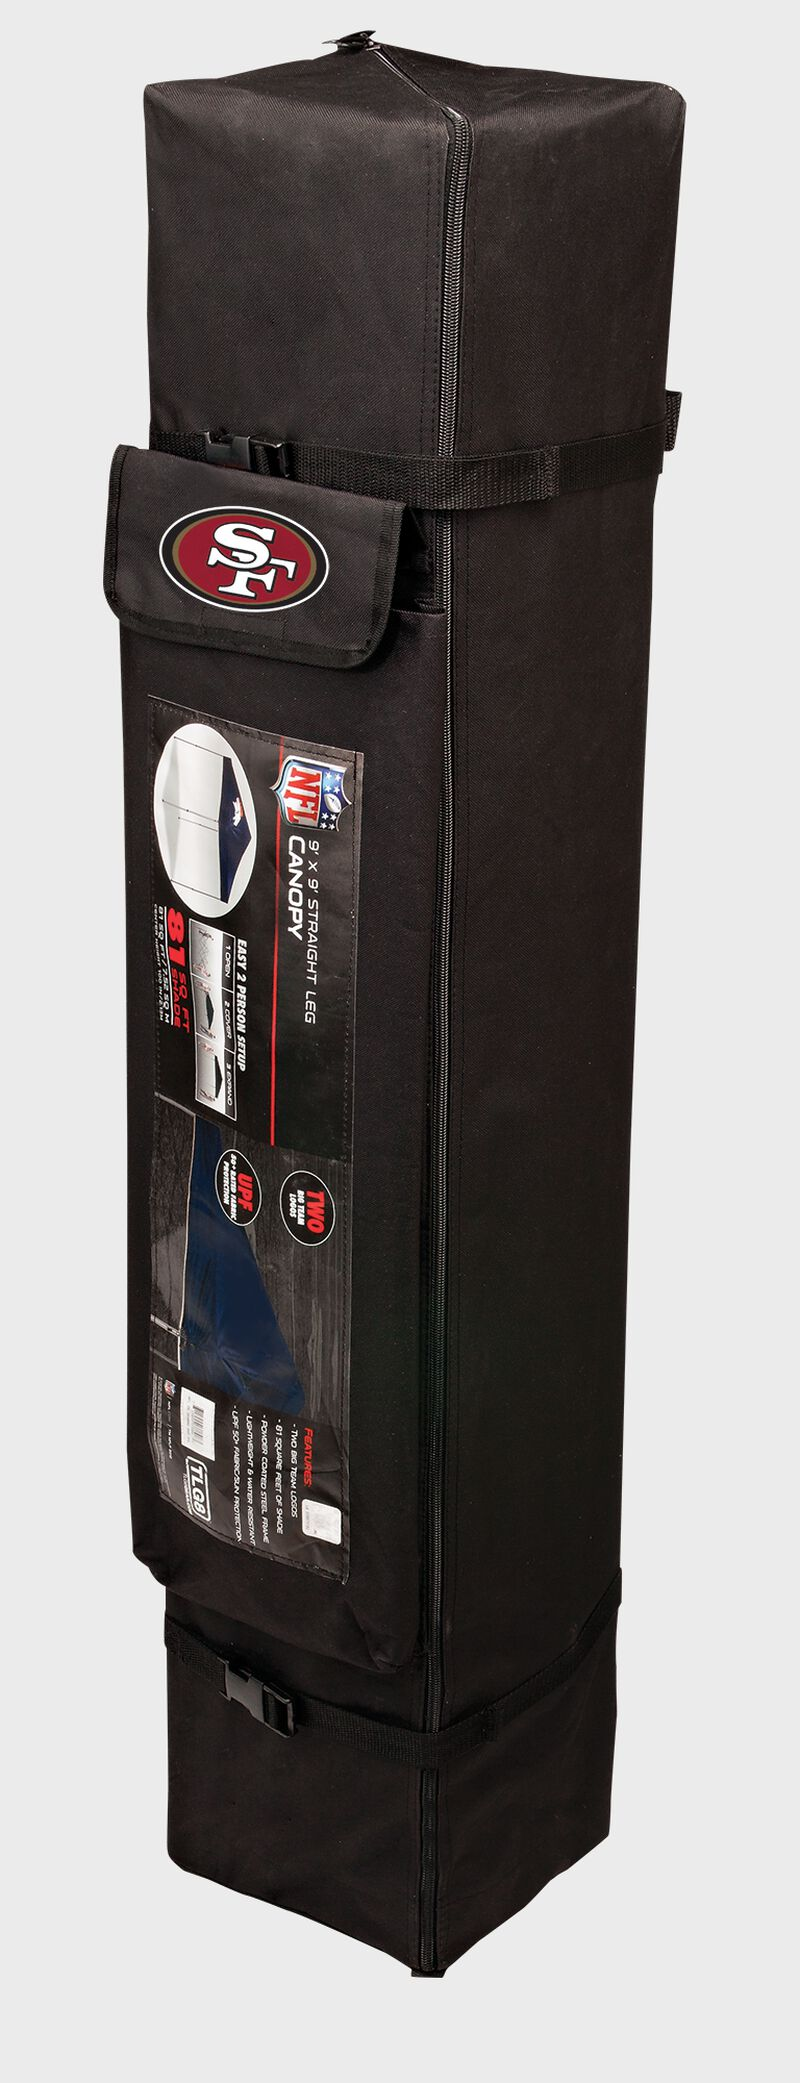 Black carry case for a San Francisco 49ers canopy